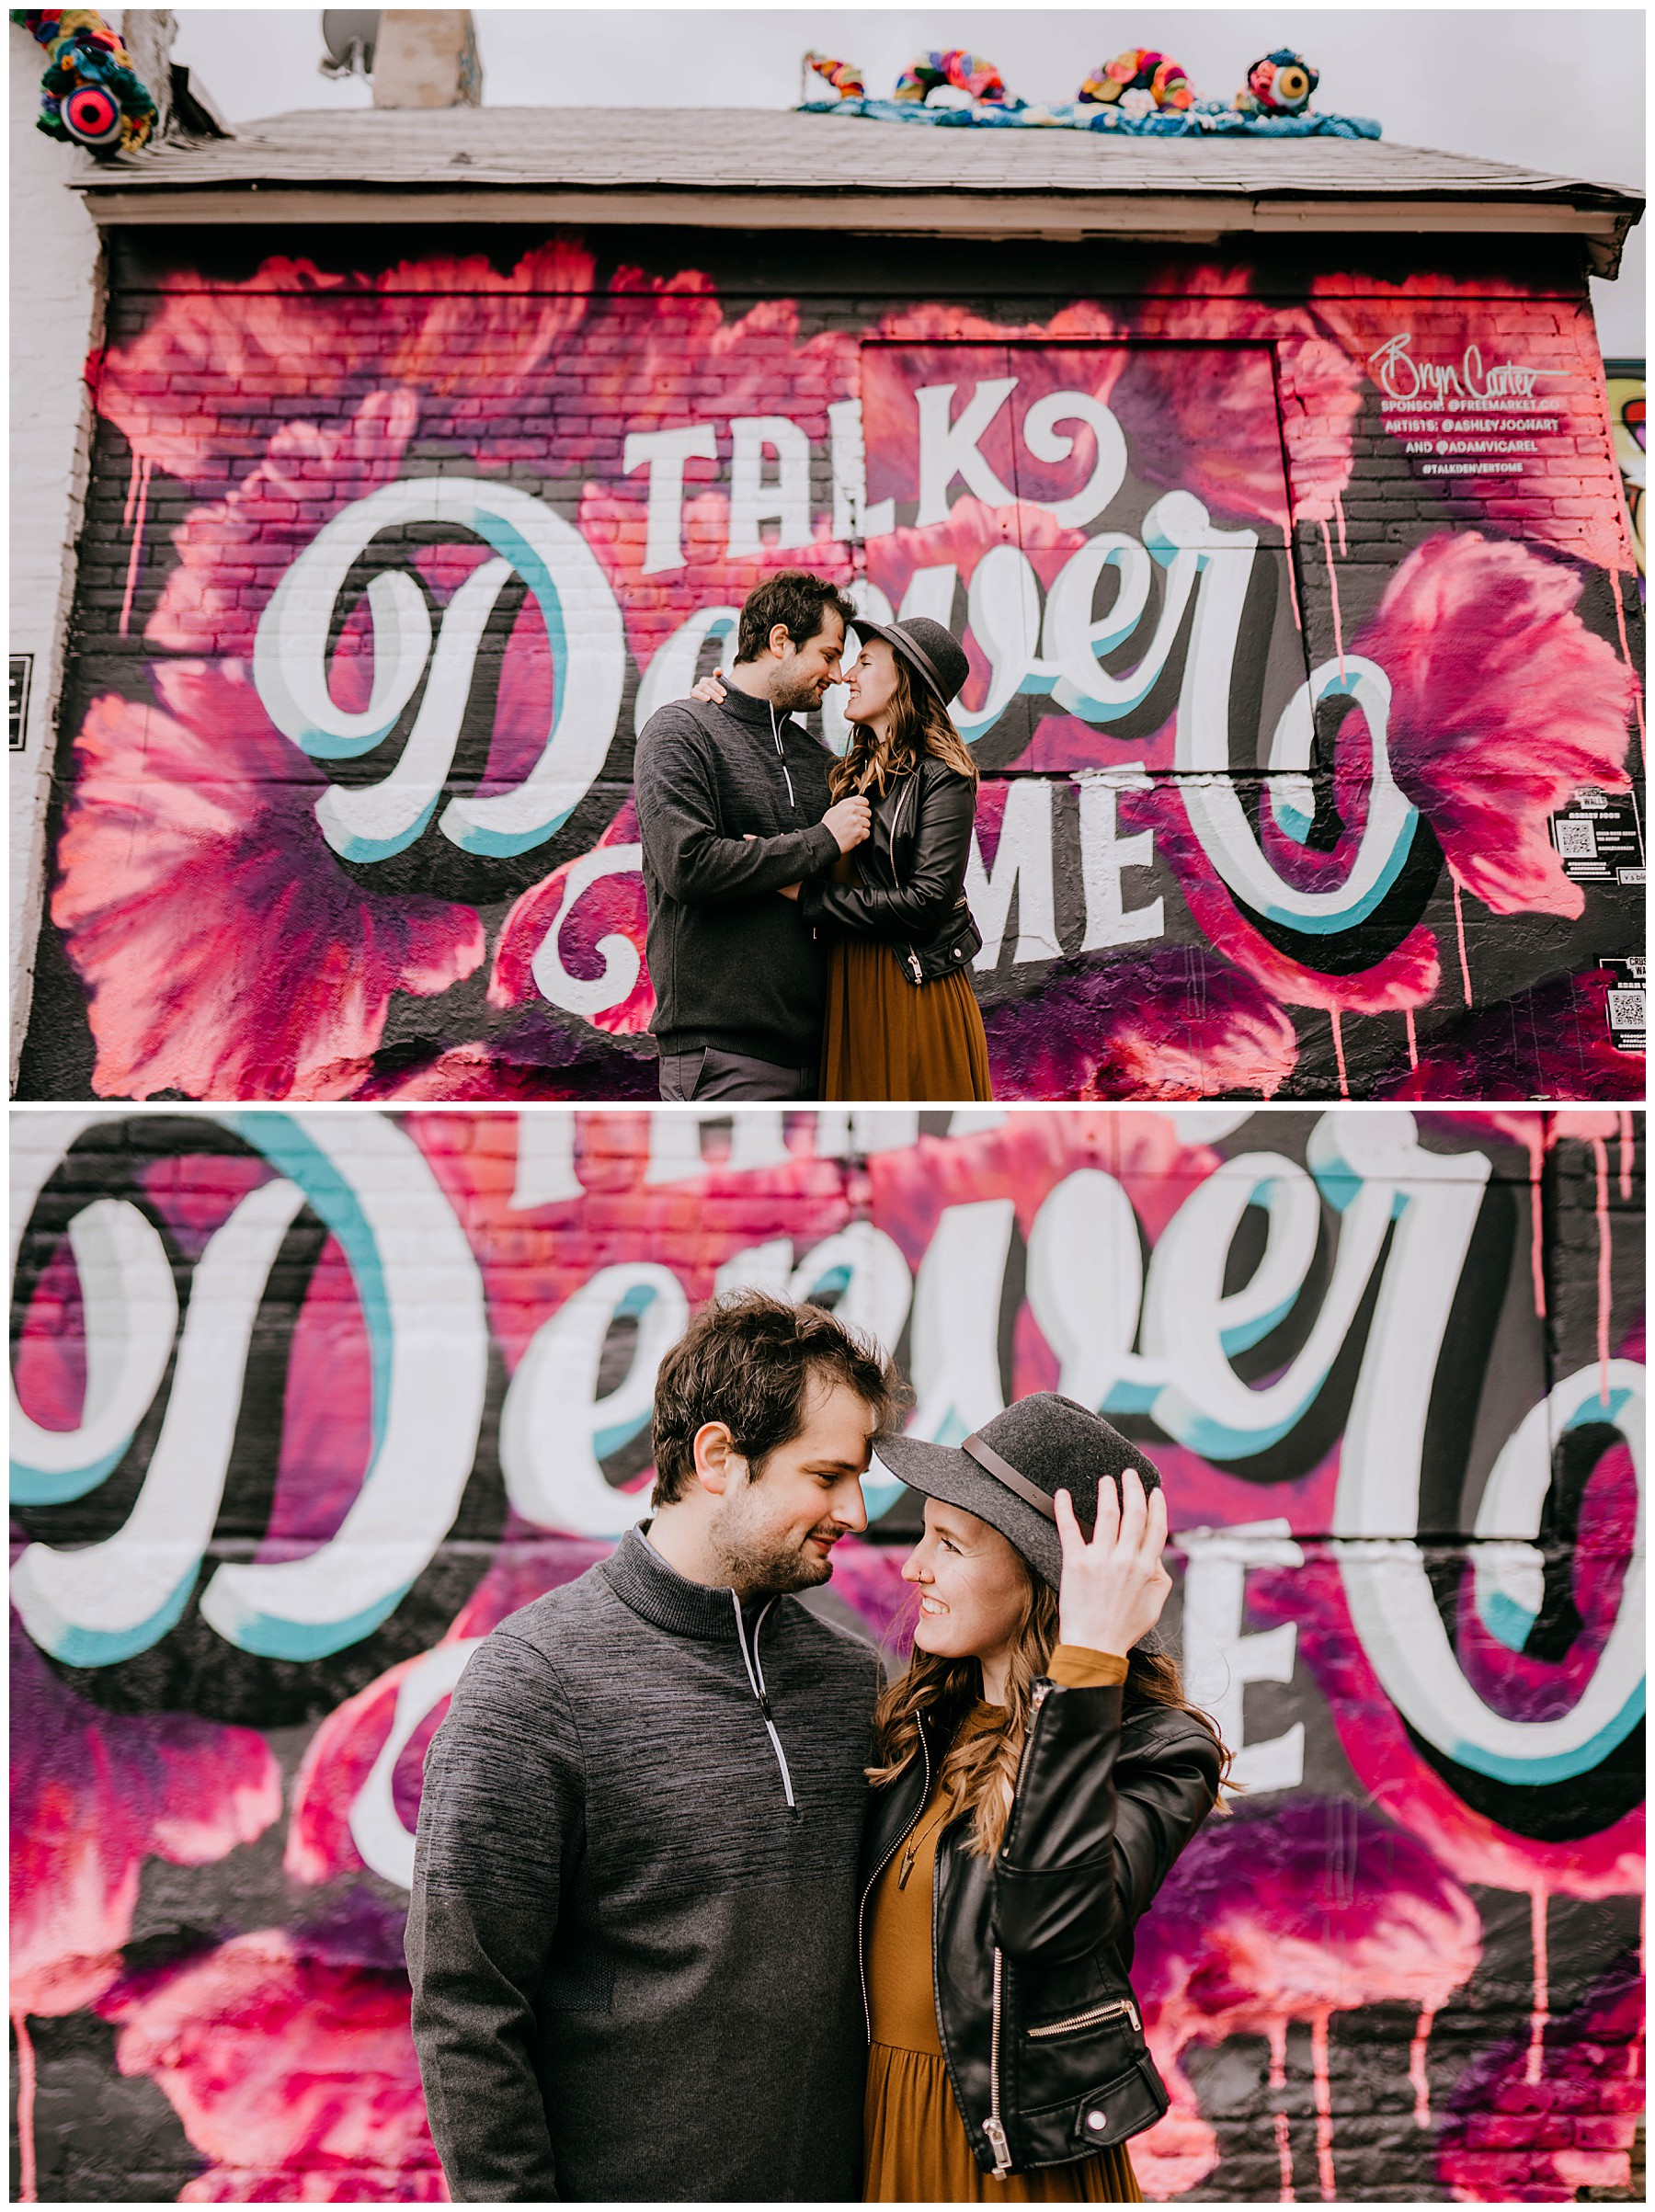 Jozie & Sam Engagement Session RiNo District Denver CO 51